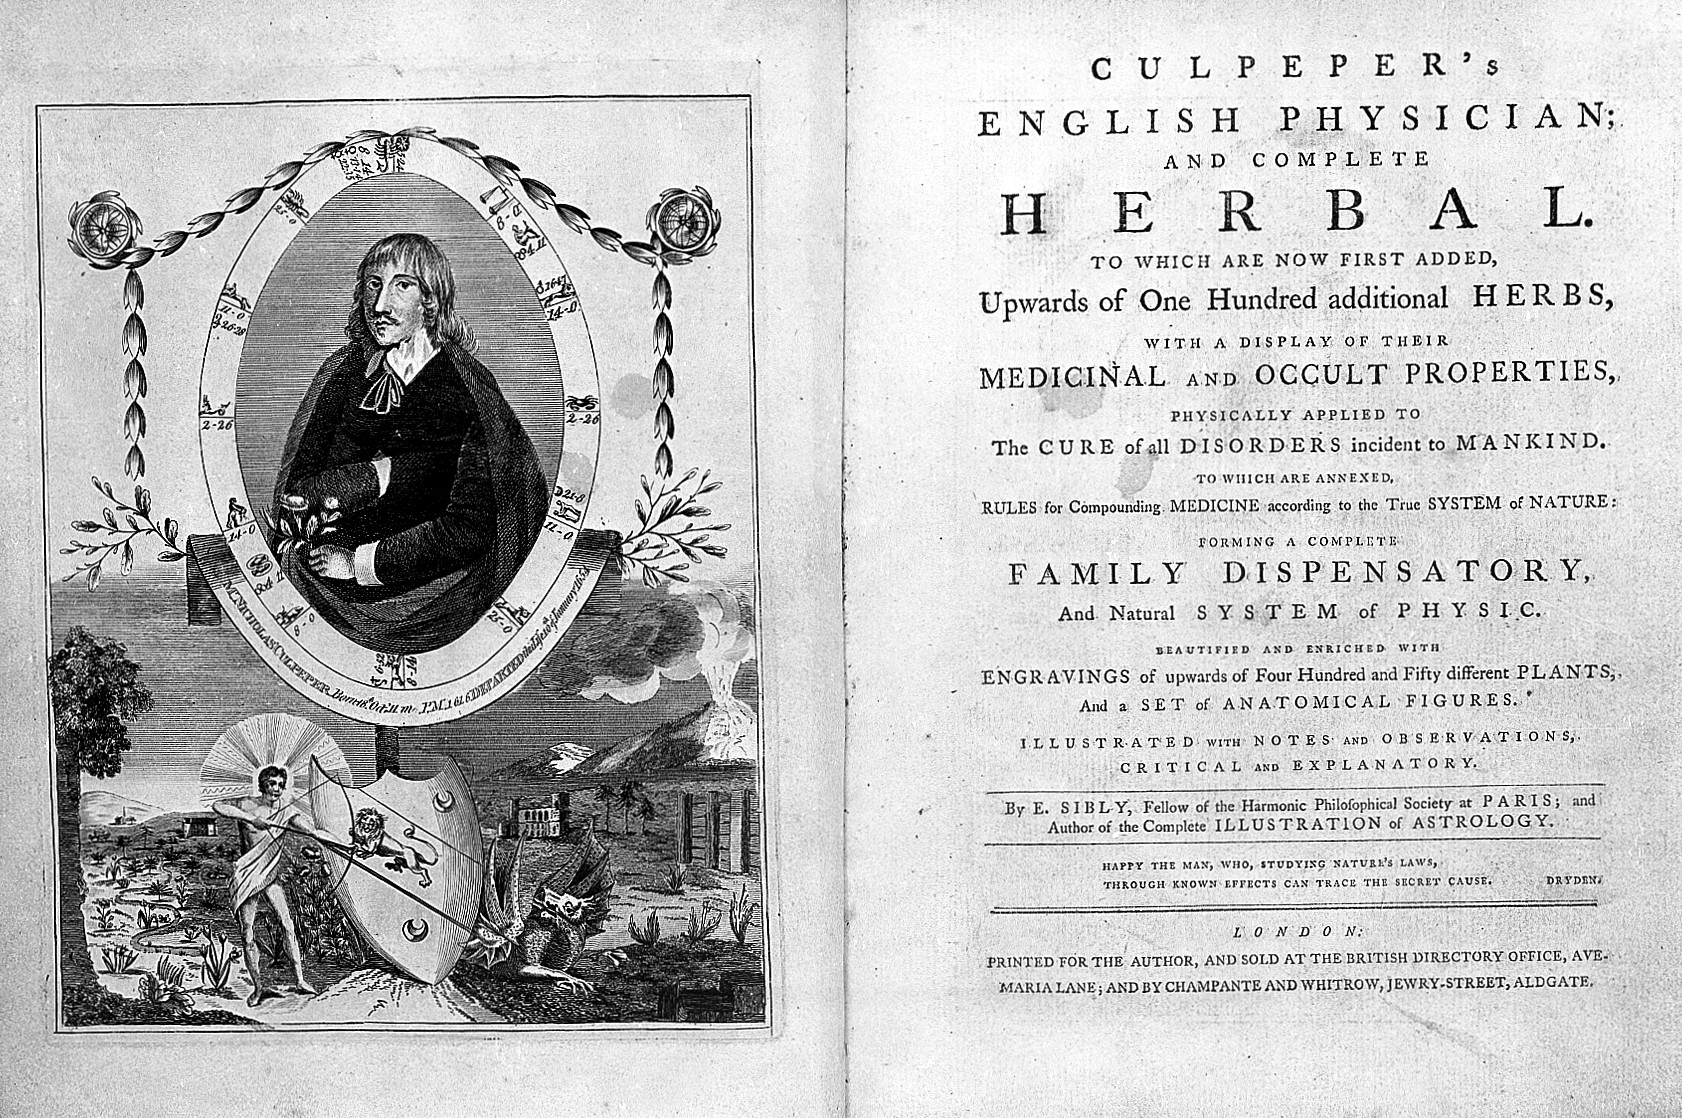 Nicholas Culpeper publishes Complete Herbal – Harry Potter Lexicon